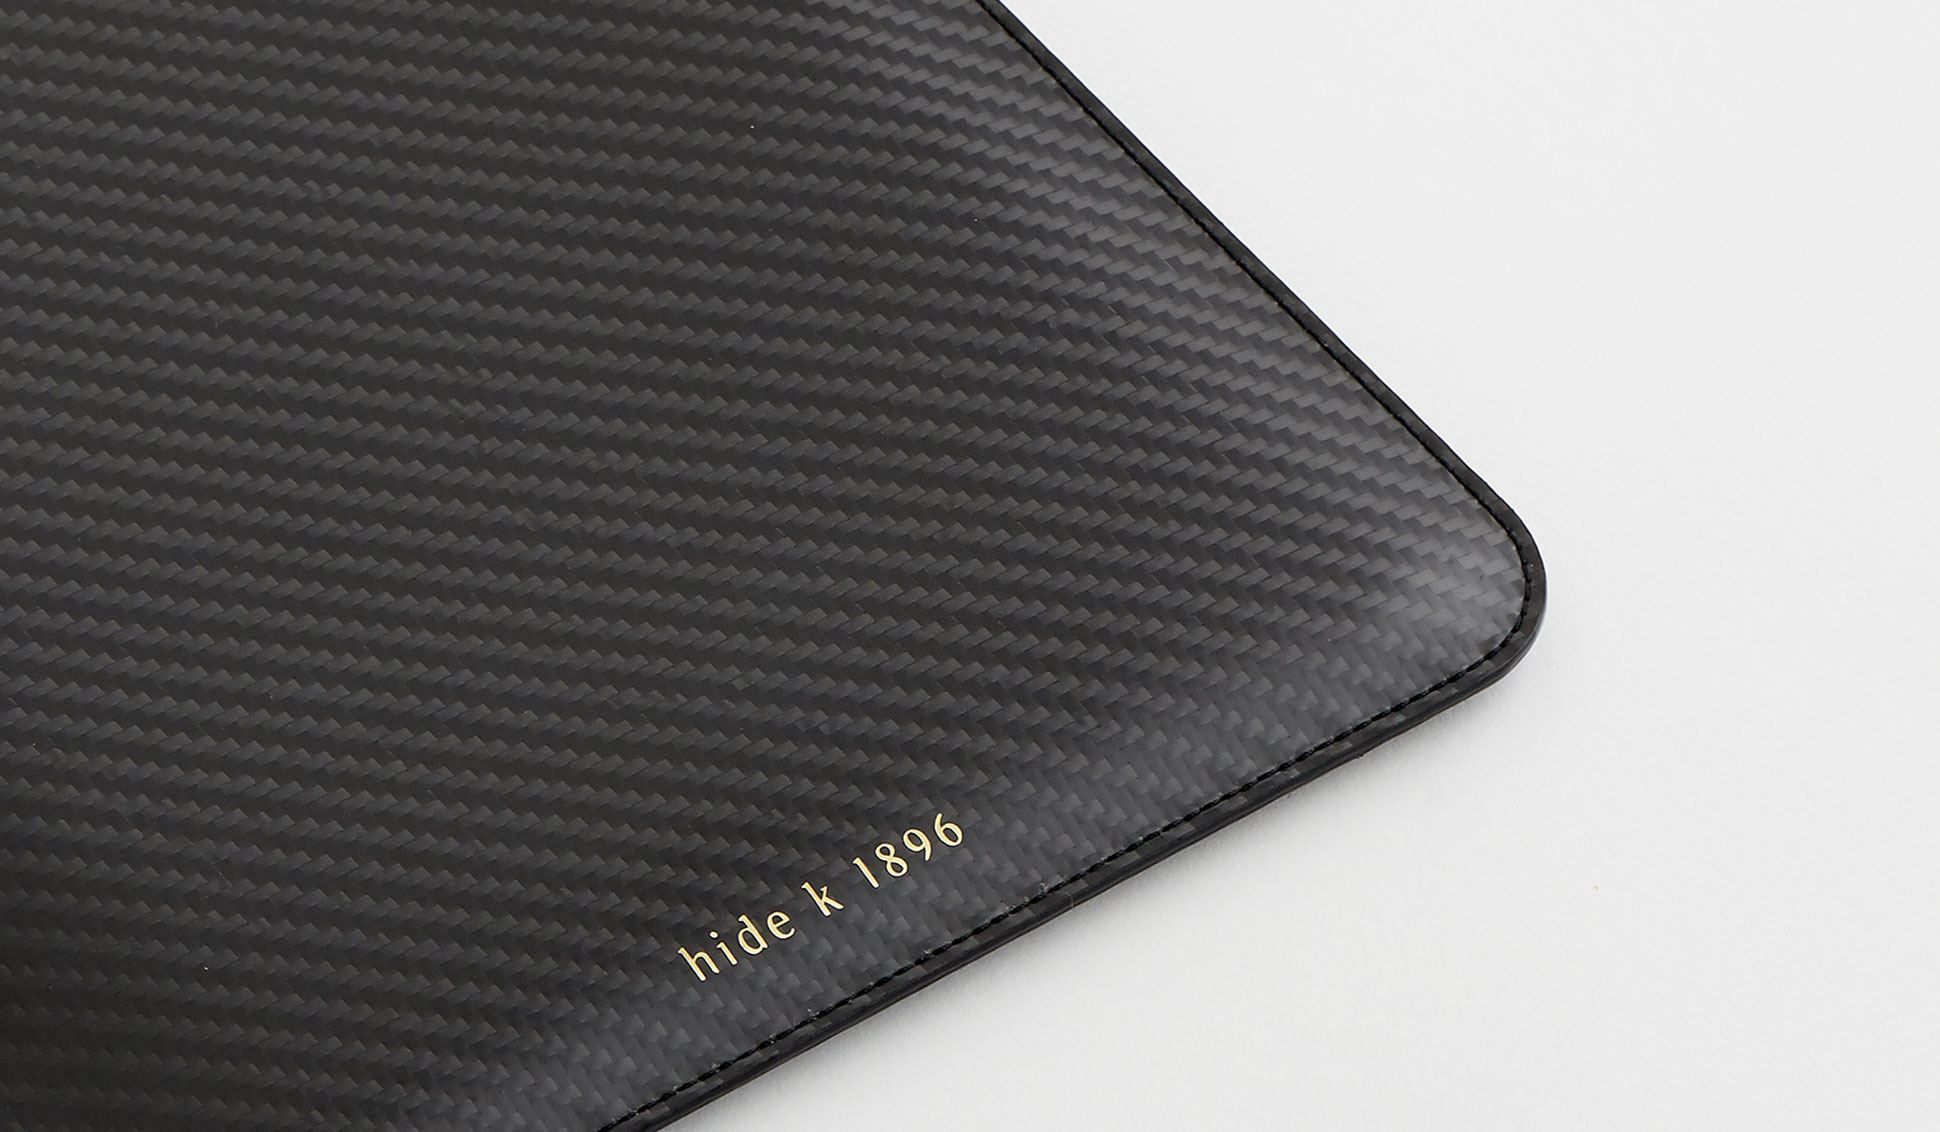 8dfd1d8e87be Lexus Launches Wallets and Bags Made from